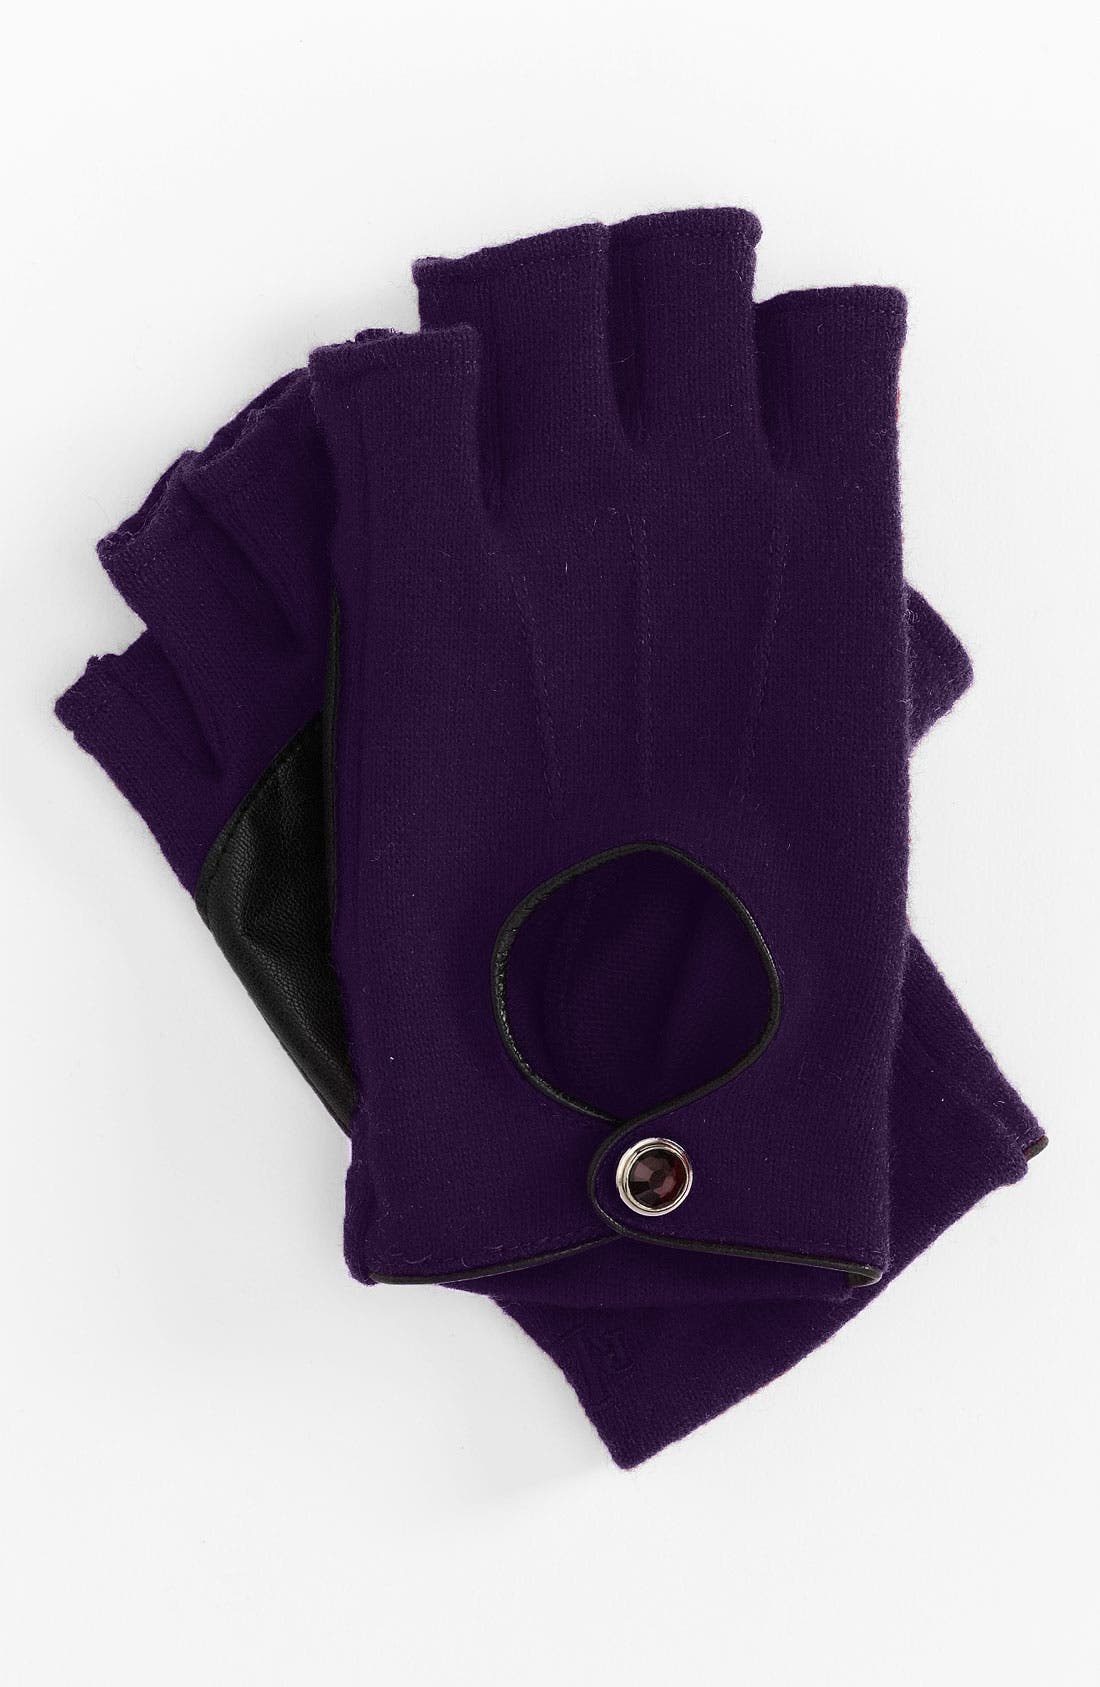 Main Image - Lauren Ralph Lauren Fingerless Driving Gloves